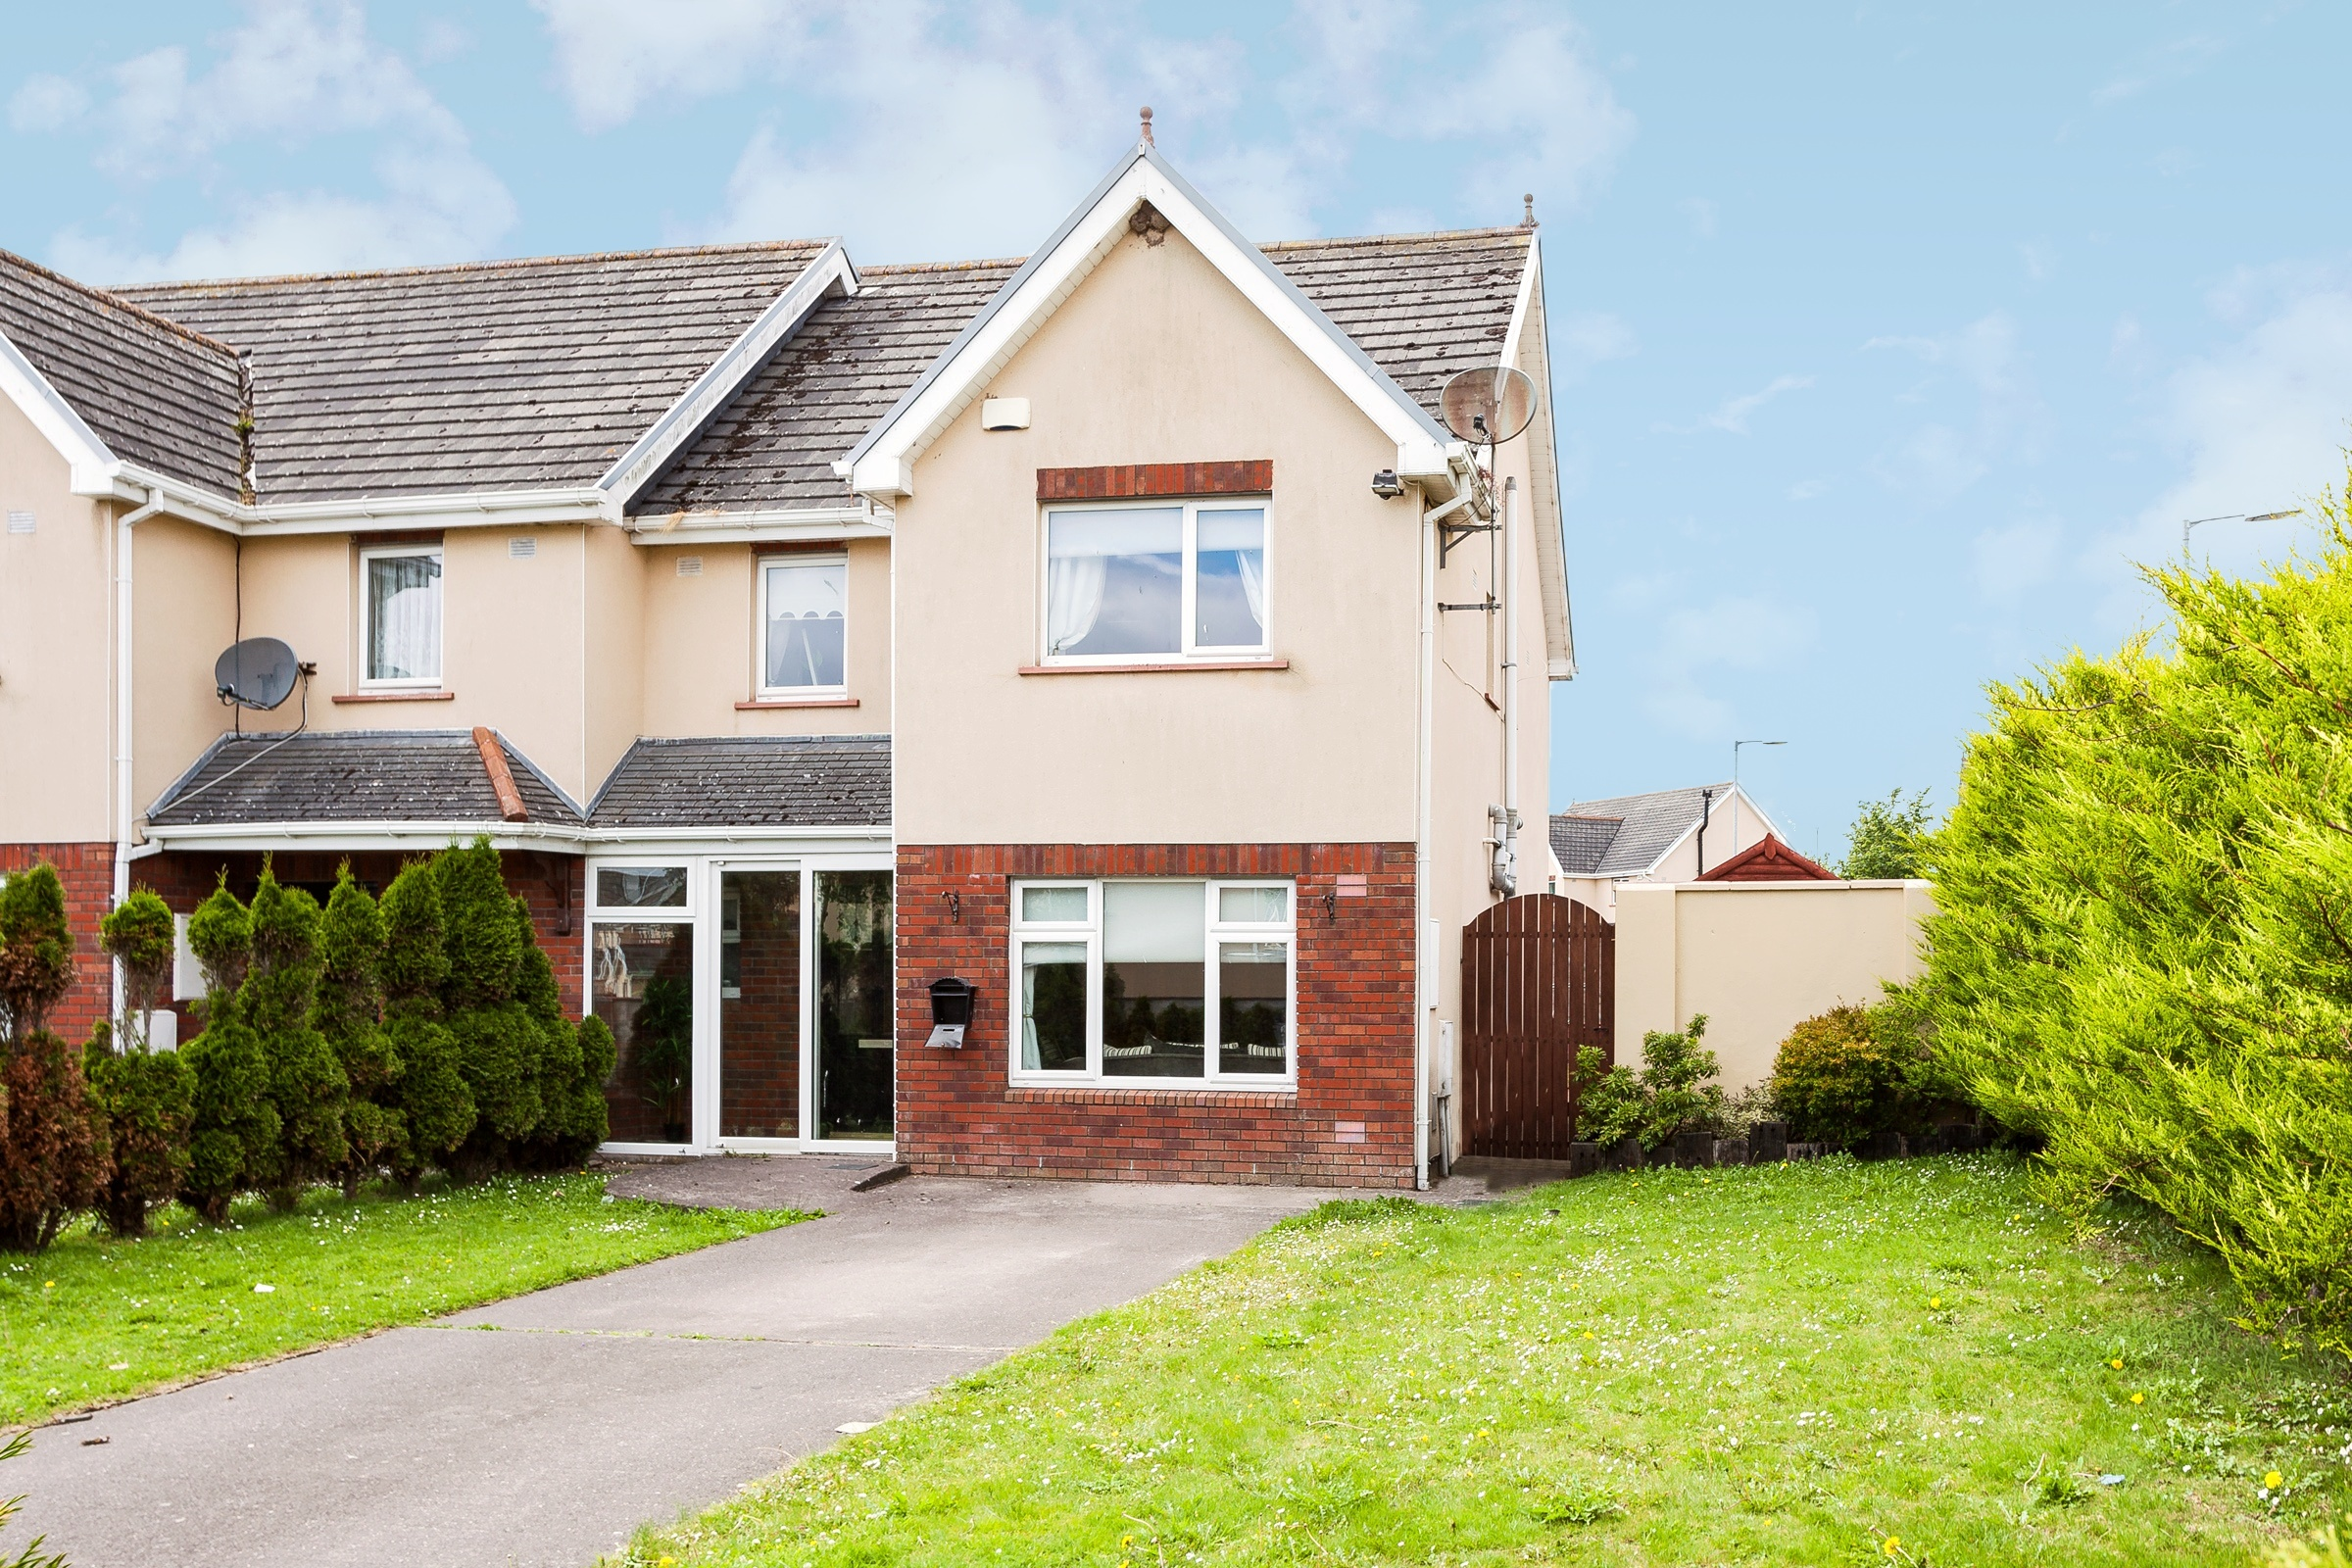 10, The Lawn, Lios Cara, Killeens, County Cork, T23 VP76